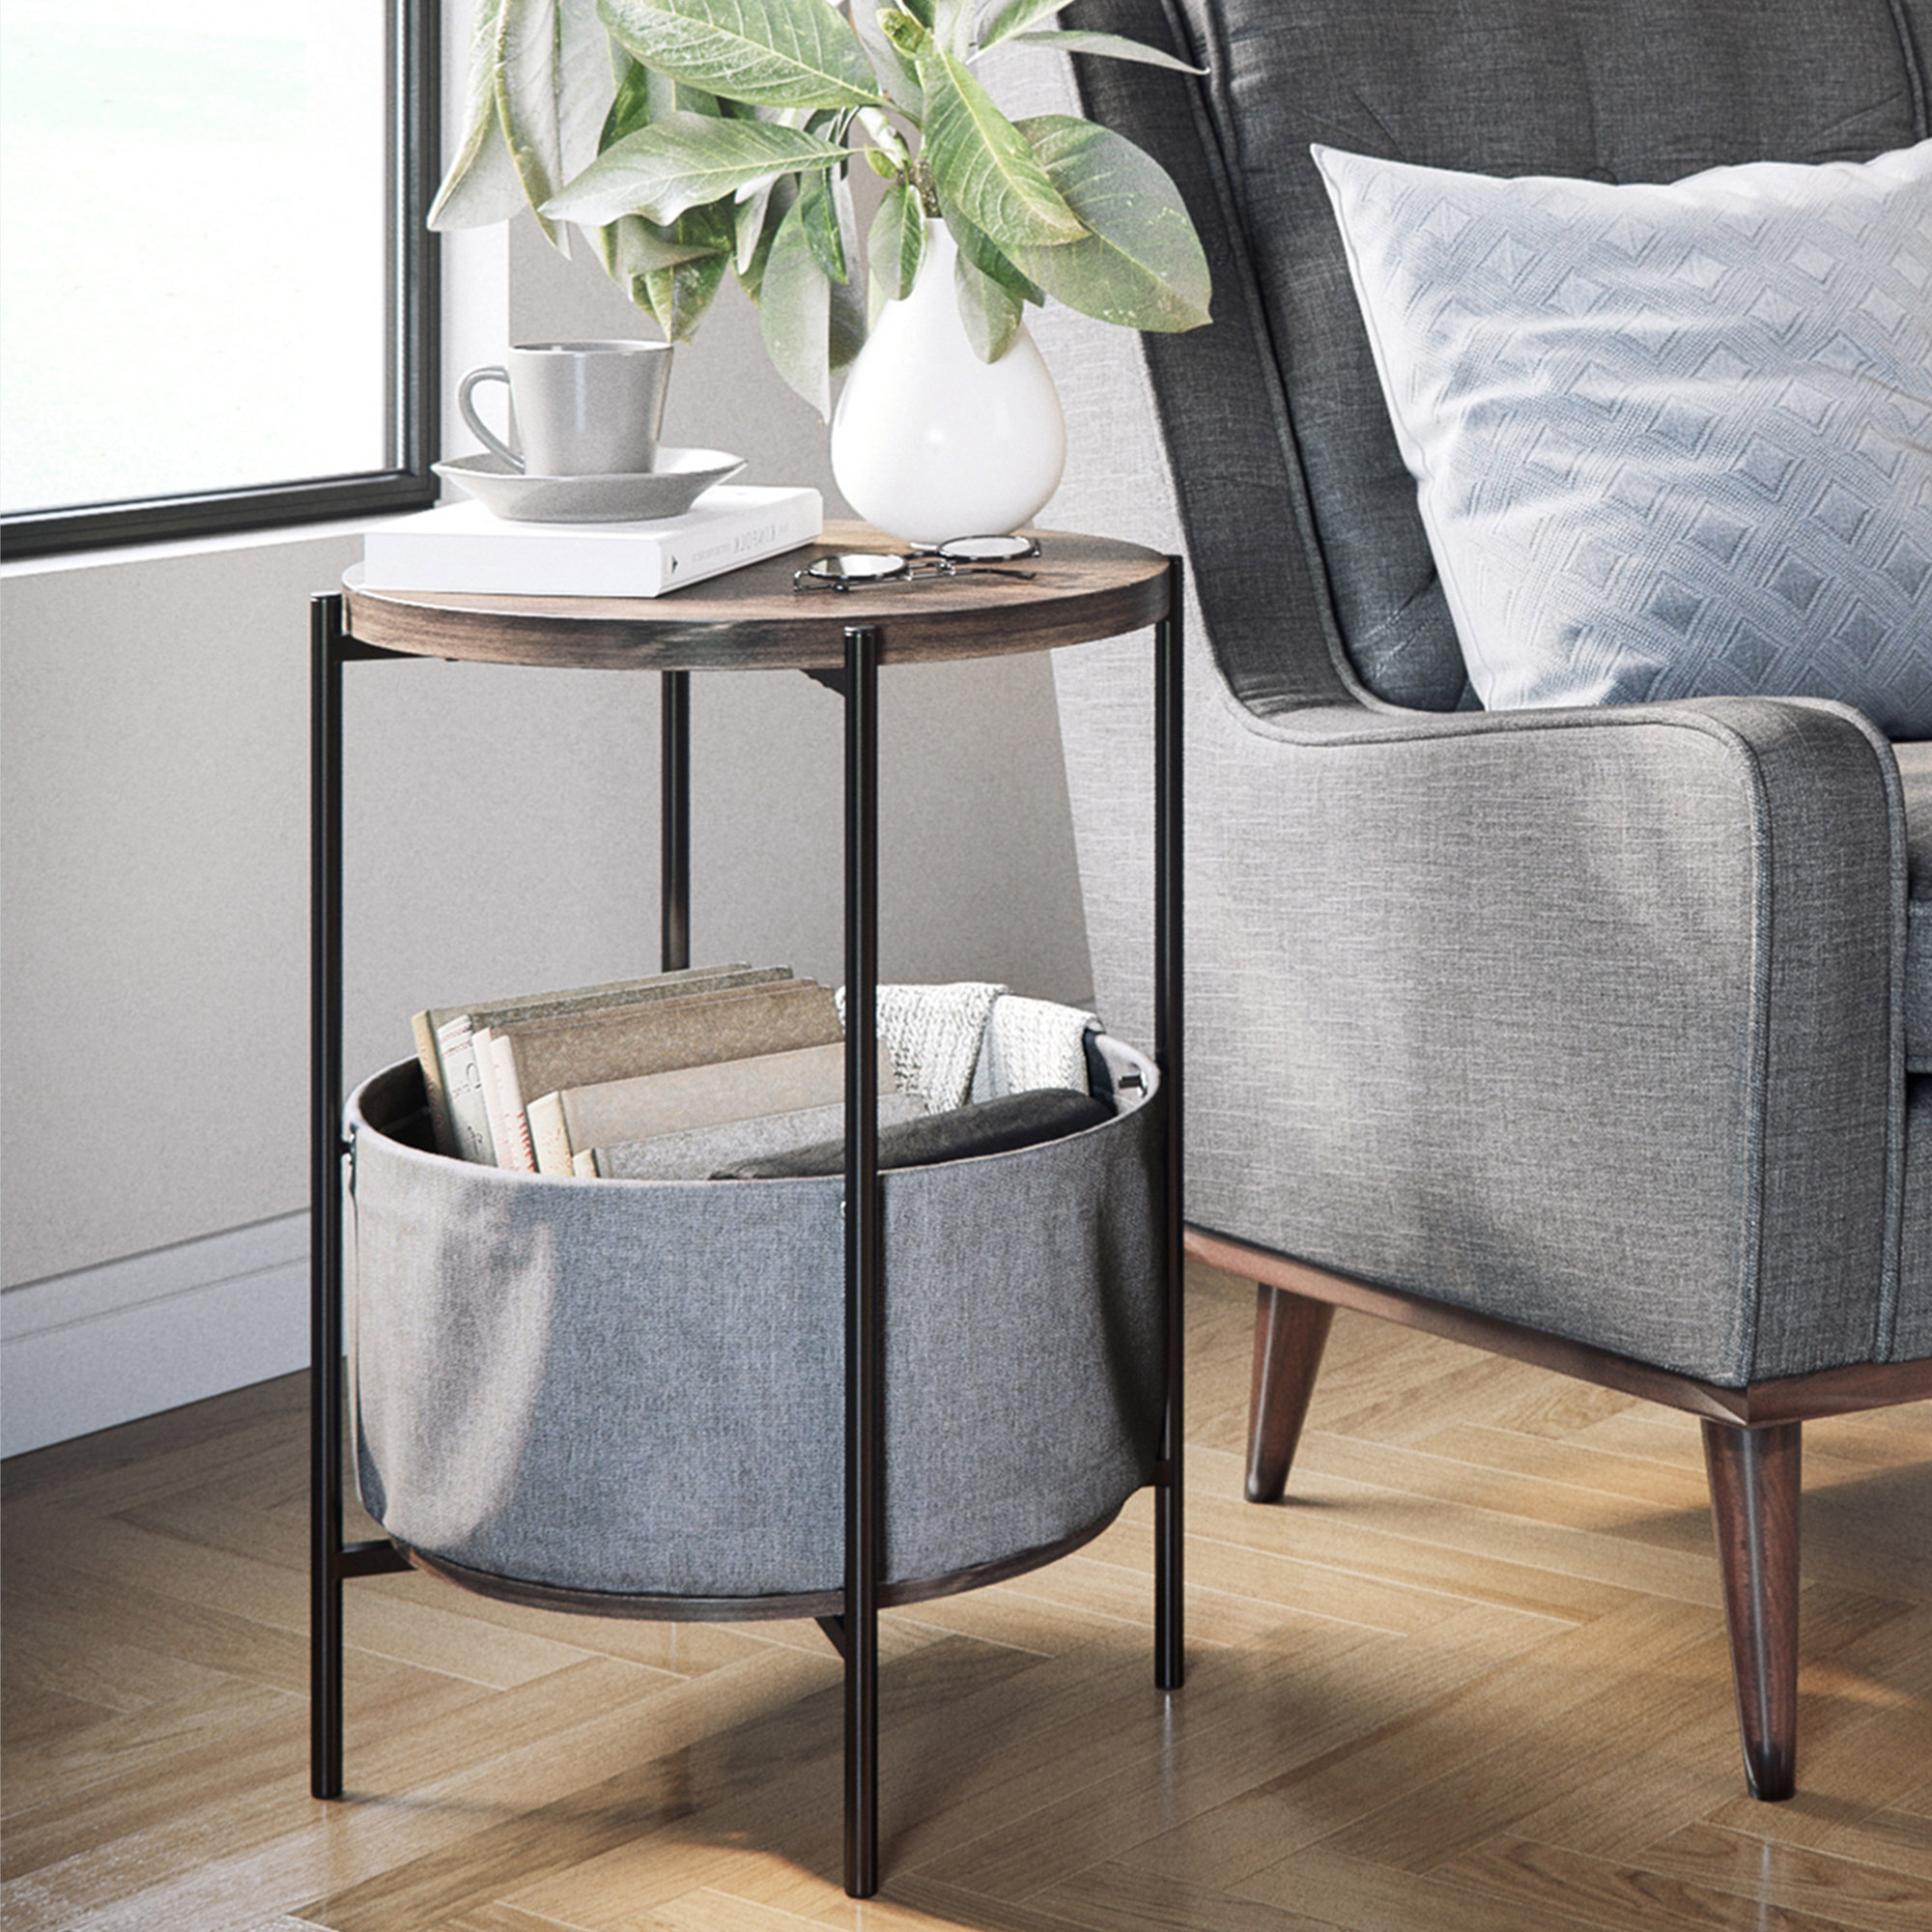 very narrow chair side table bluxome end with storage small accent quickview linon home decor products black rattan outdoor coffee diy kitchen plans acrylic pier one furniture